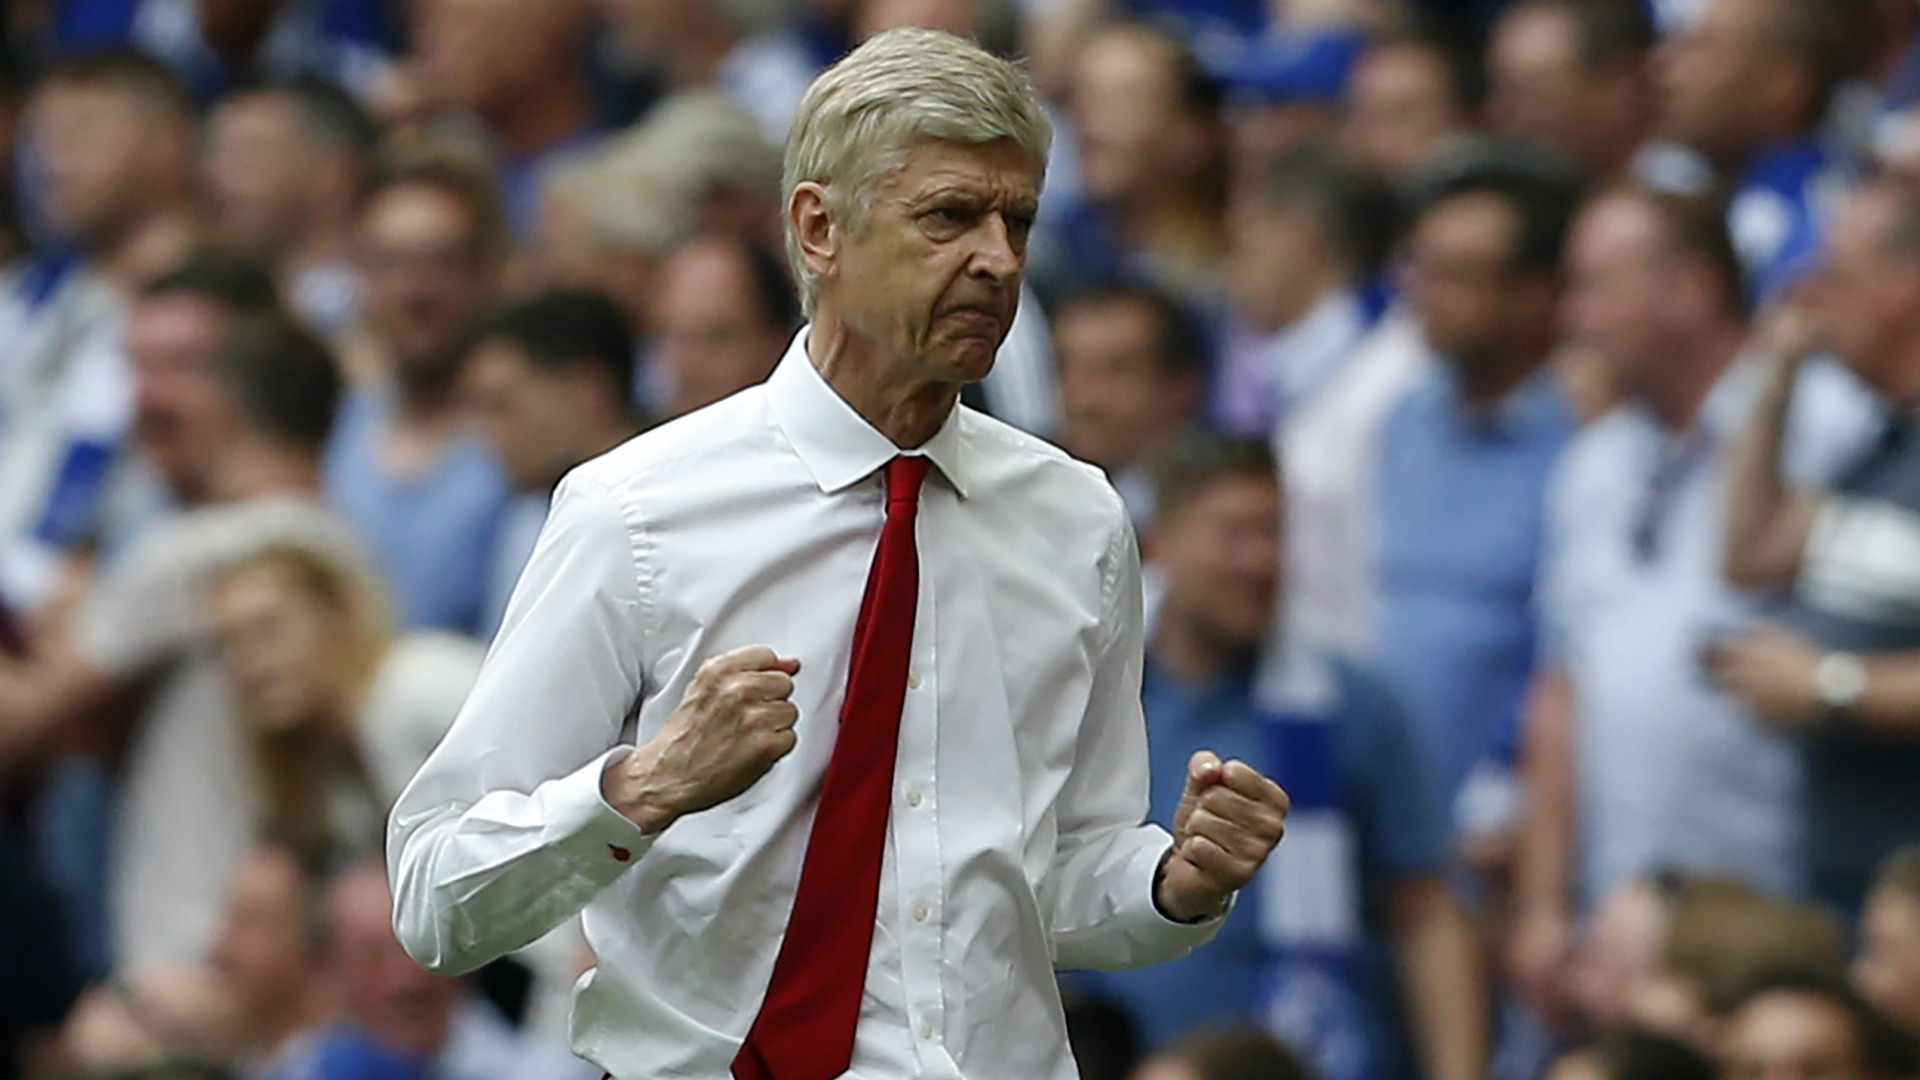 Arsenal board must cave if Wenger to stay